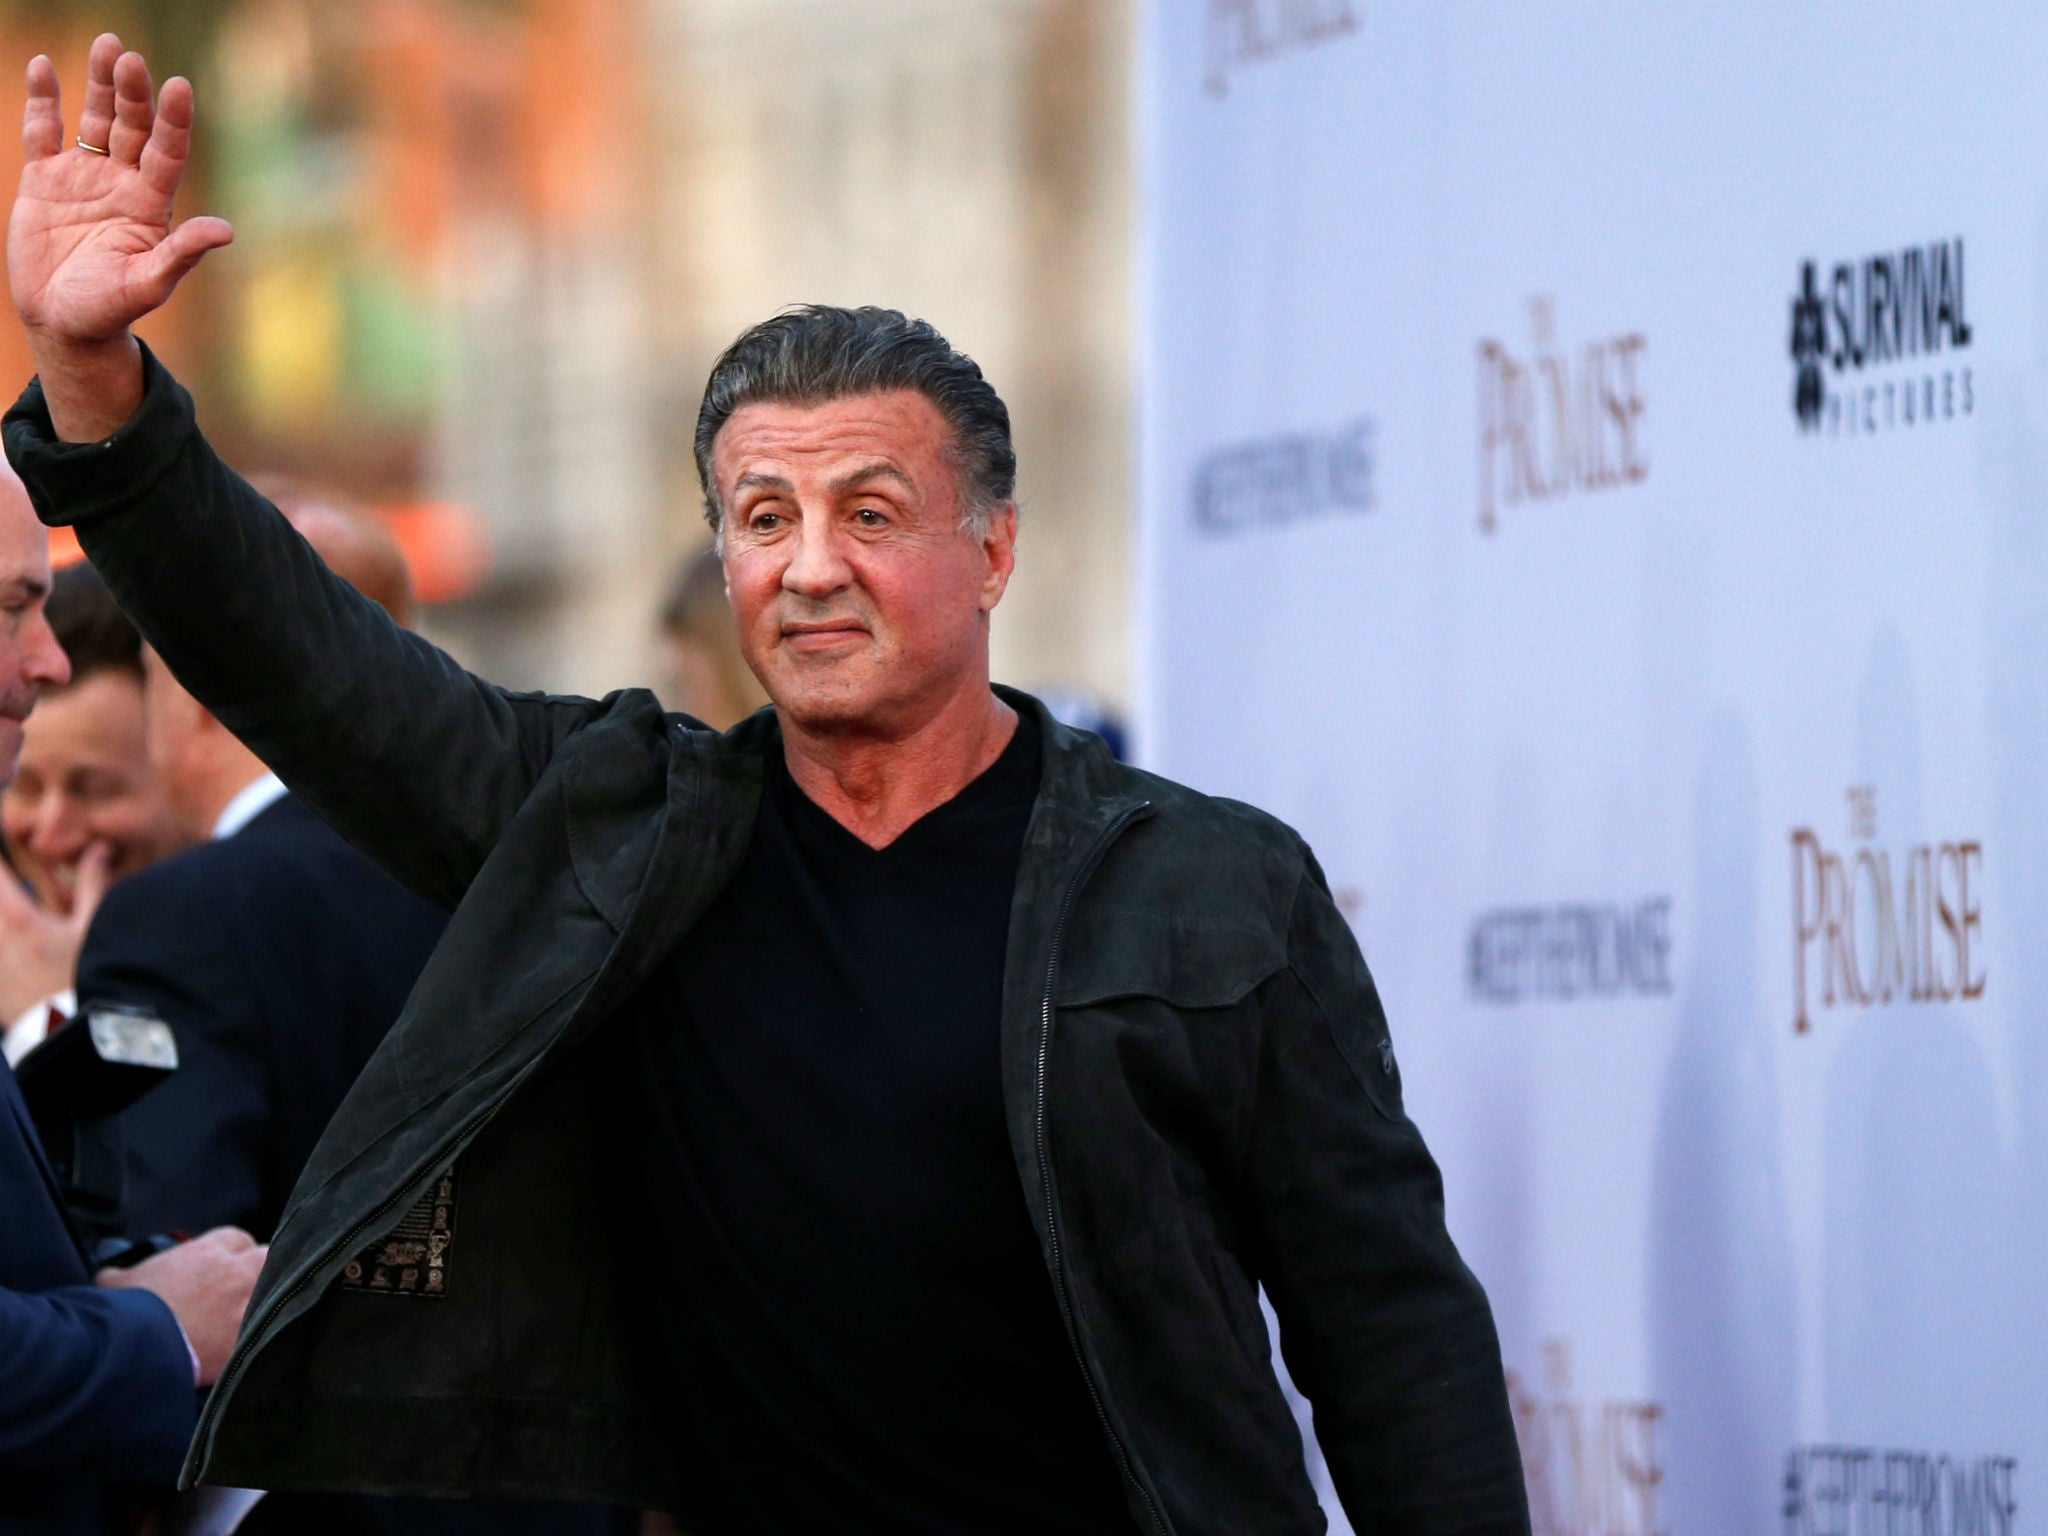 Sylvester Stallone - latest news, breaking stories and